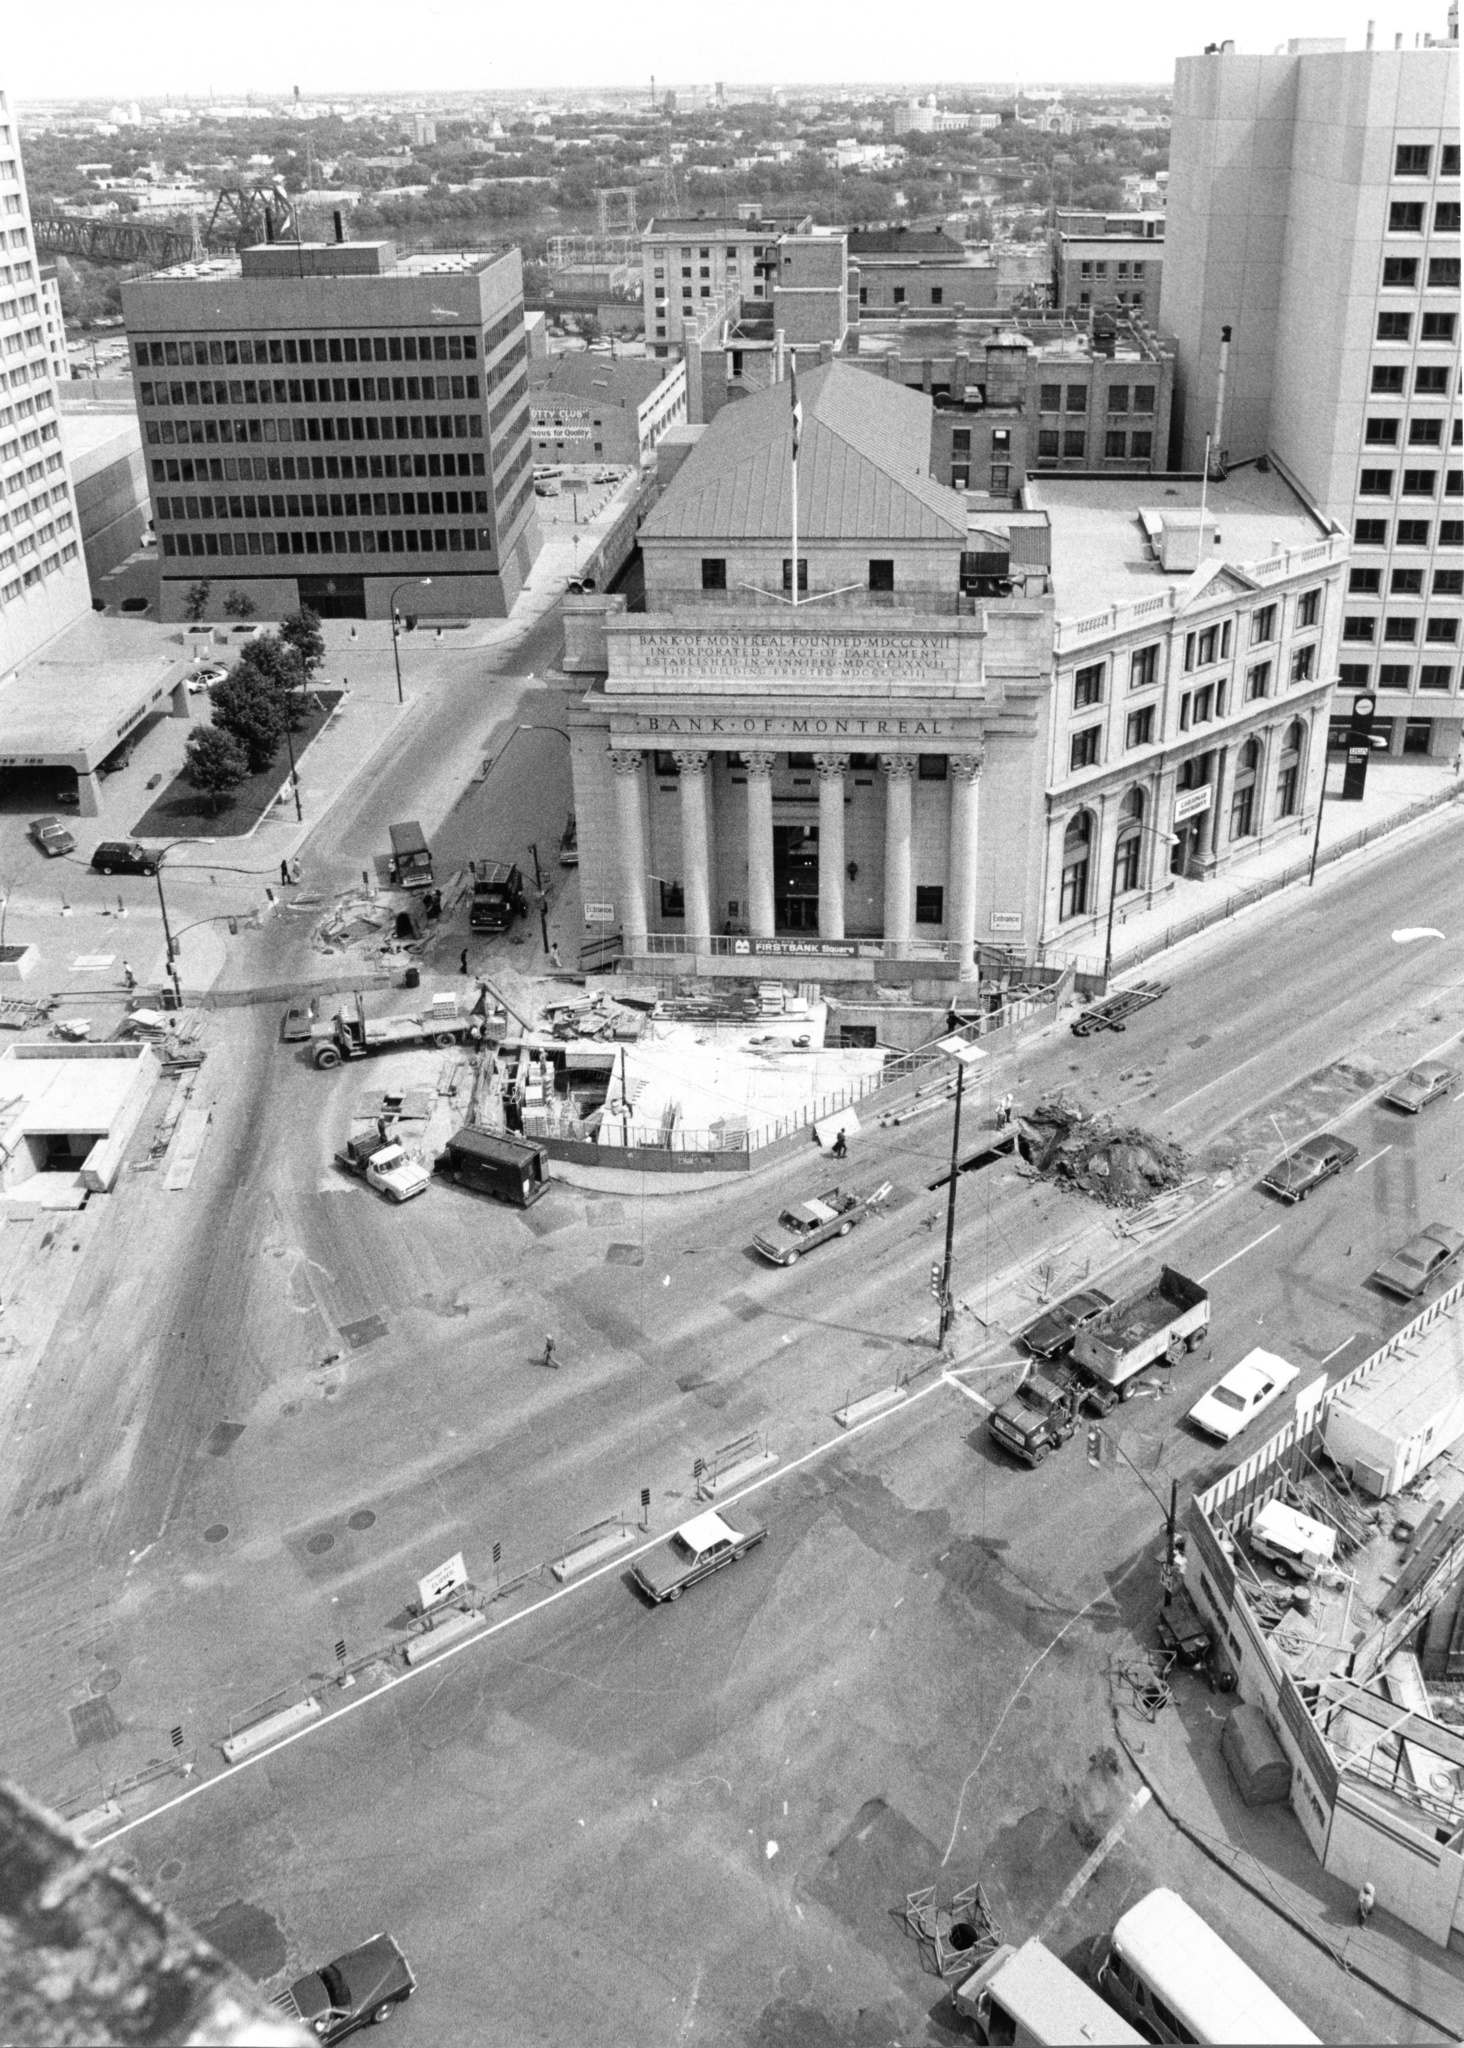 The familiar sight of road construction at the intersection, seen here in May 1978.  City crews were putting in new pavement, replacing existing sidewalks with interlocking paving stones, and upgrading street lighting. (Wayne Glowacki / Winnipeg Free Press files)</p>